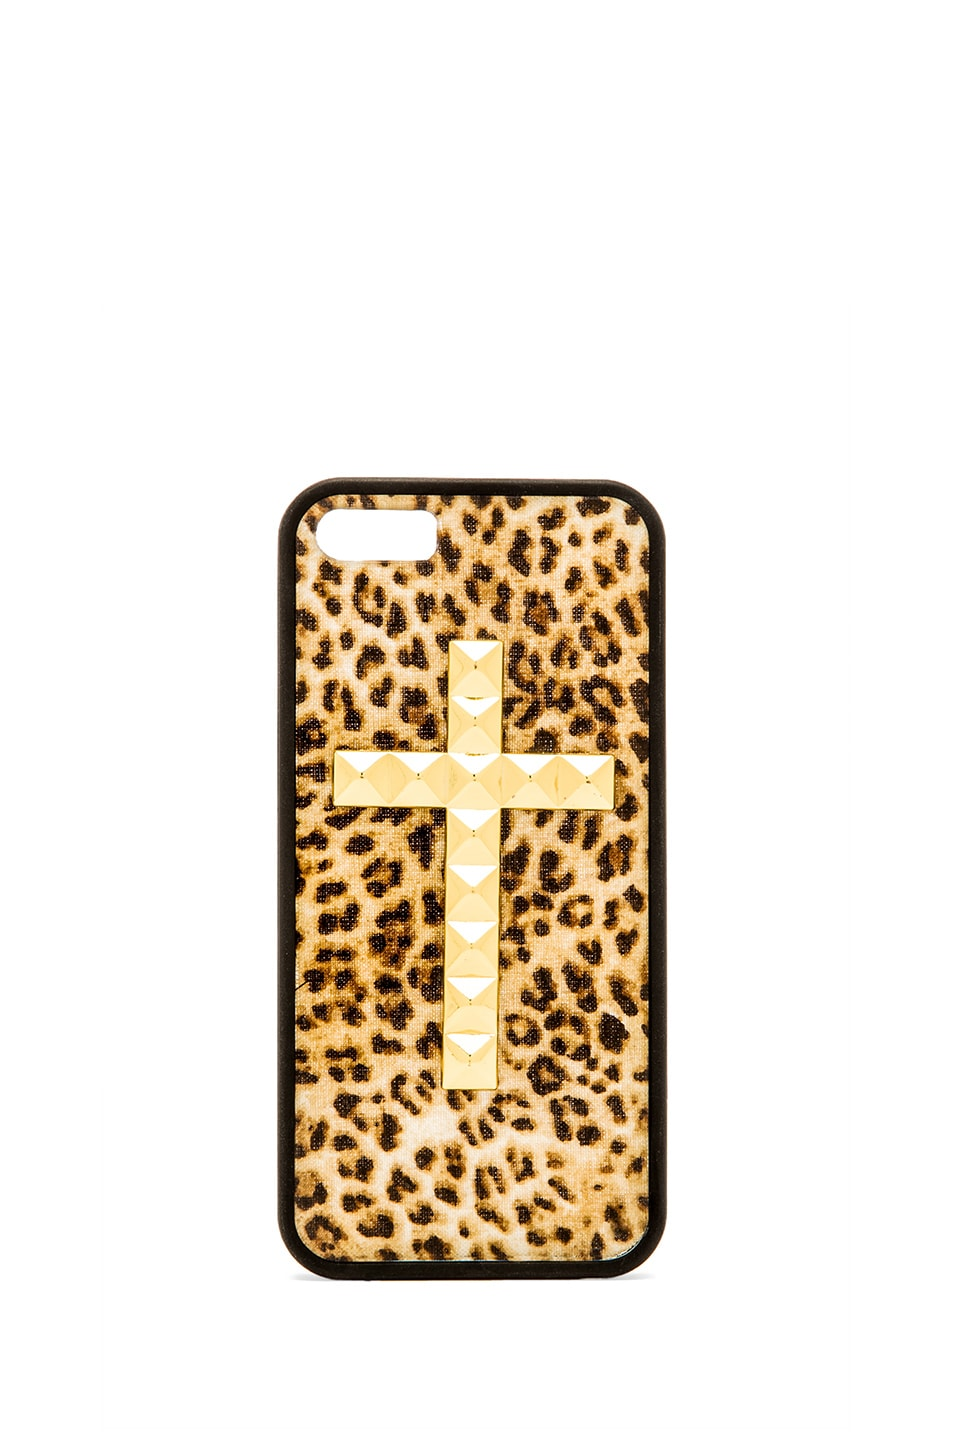 Wildflower Leopard Iphone 5/5S Case in Gold Studded Cross